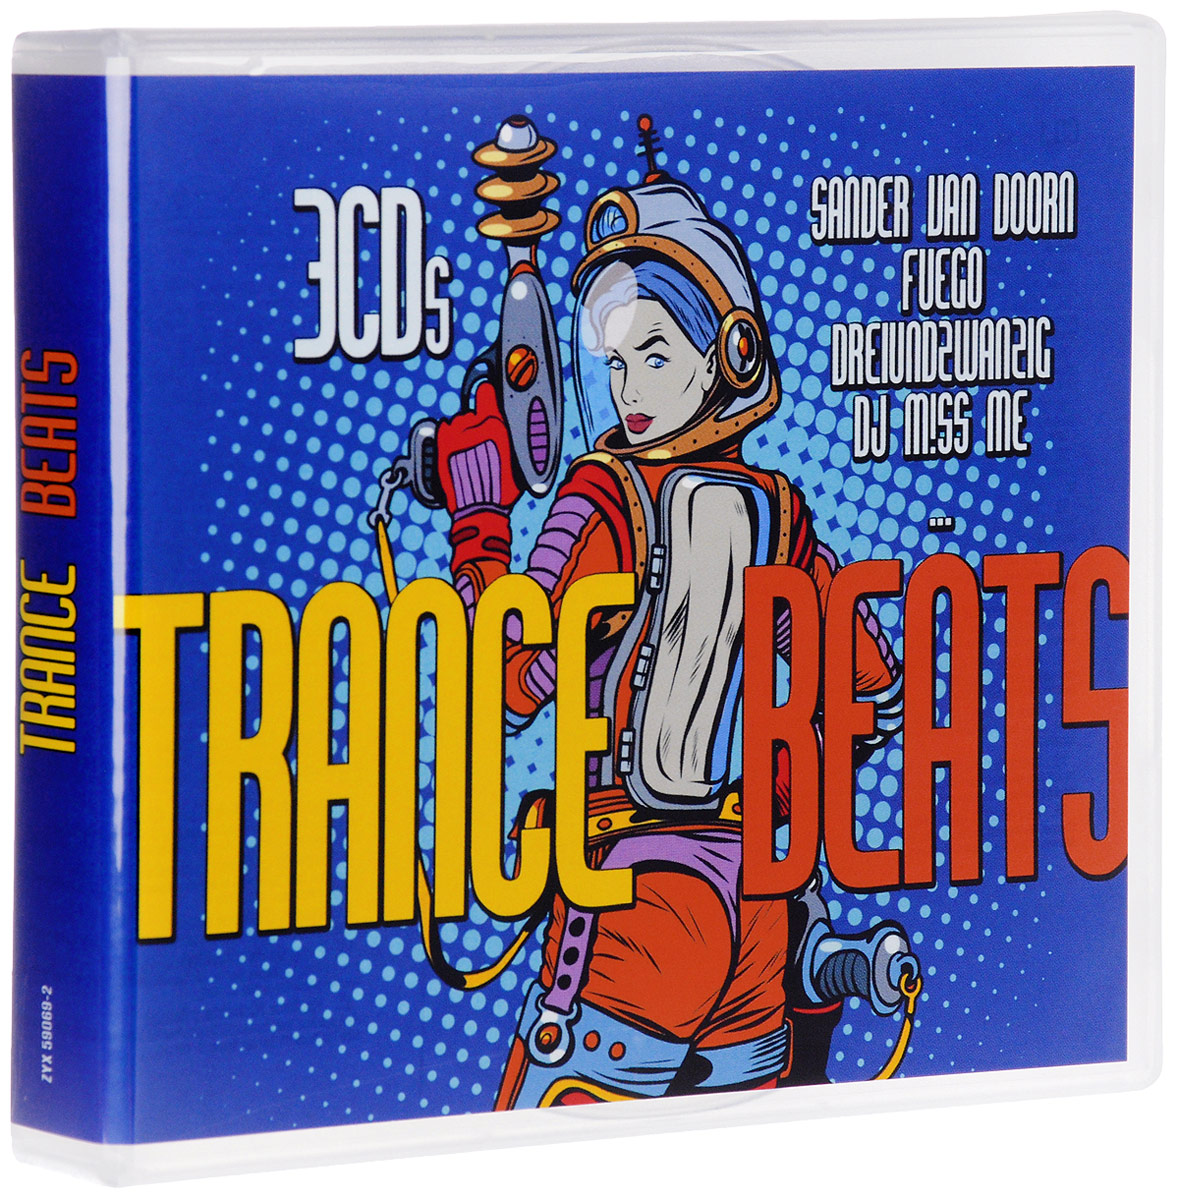 Trance Beats (3 CD) туфли quelle front by ascot 1012701